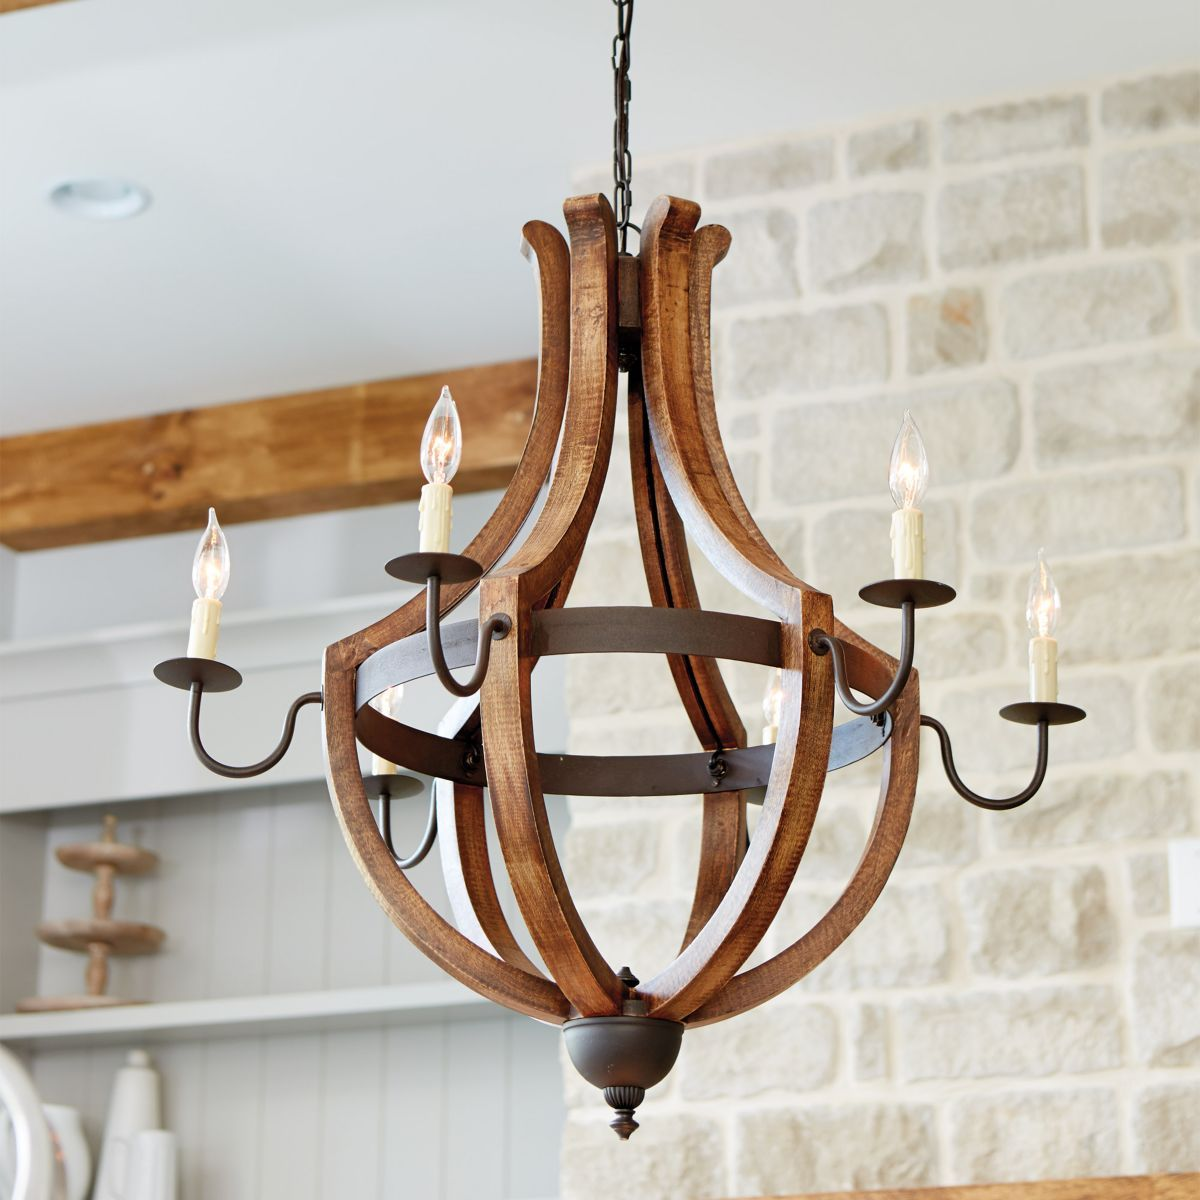 Wood Chandeliers For Dining Room: Tuscany 6-Light Chandelier